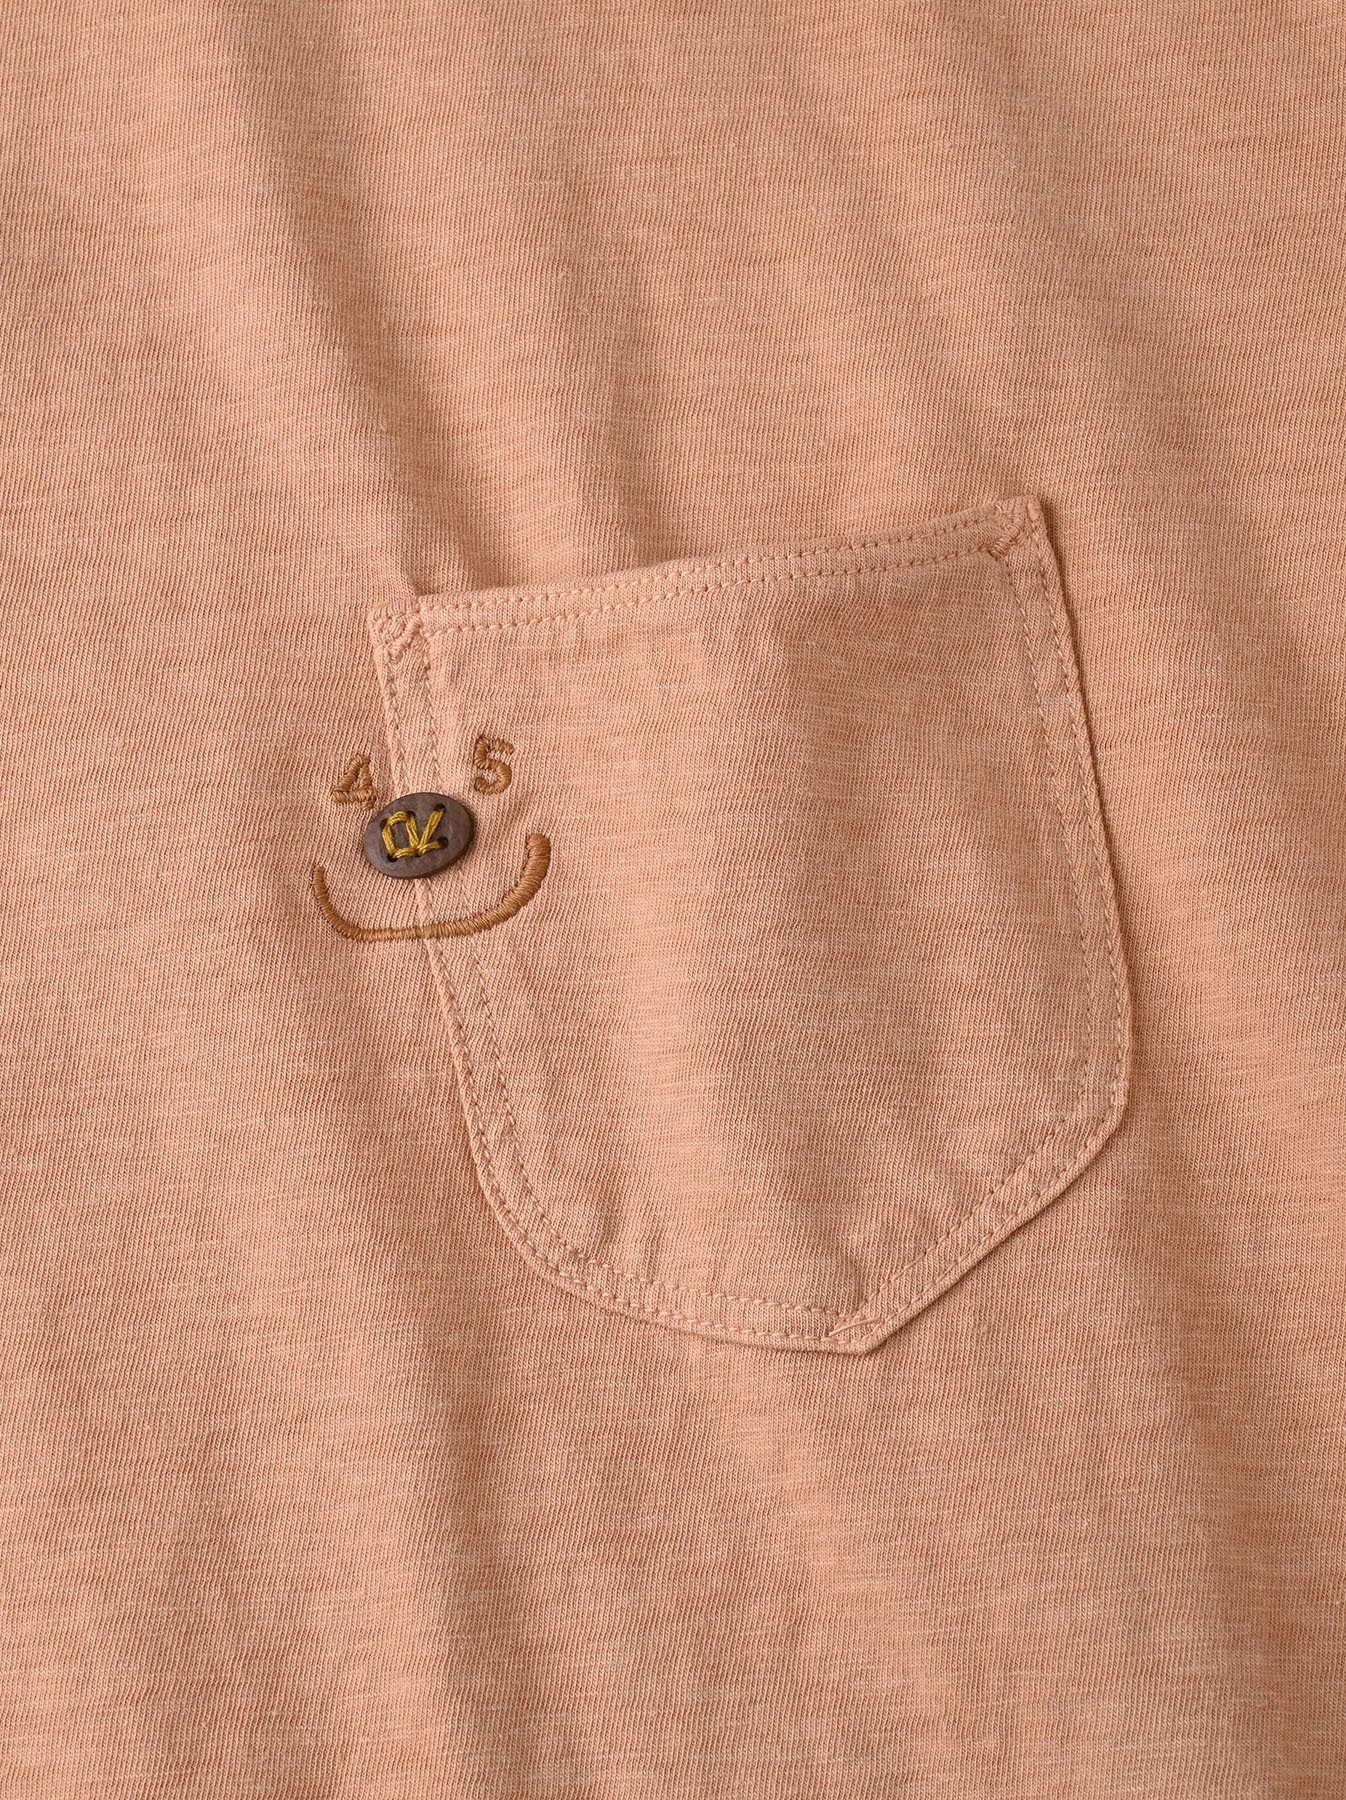 Smile R Embroidery 908 Ocean T-shirt (0621)-11